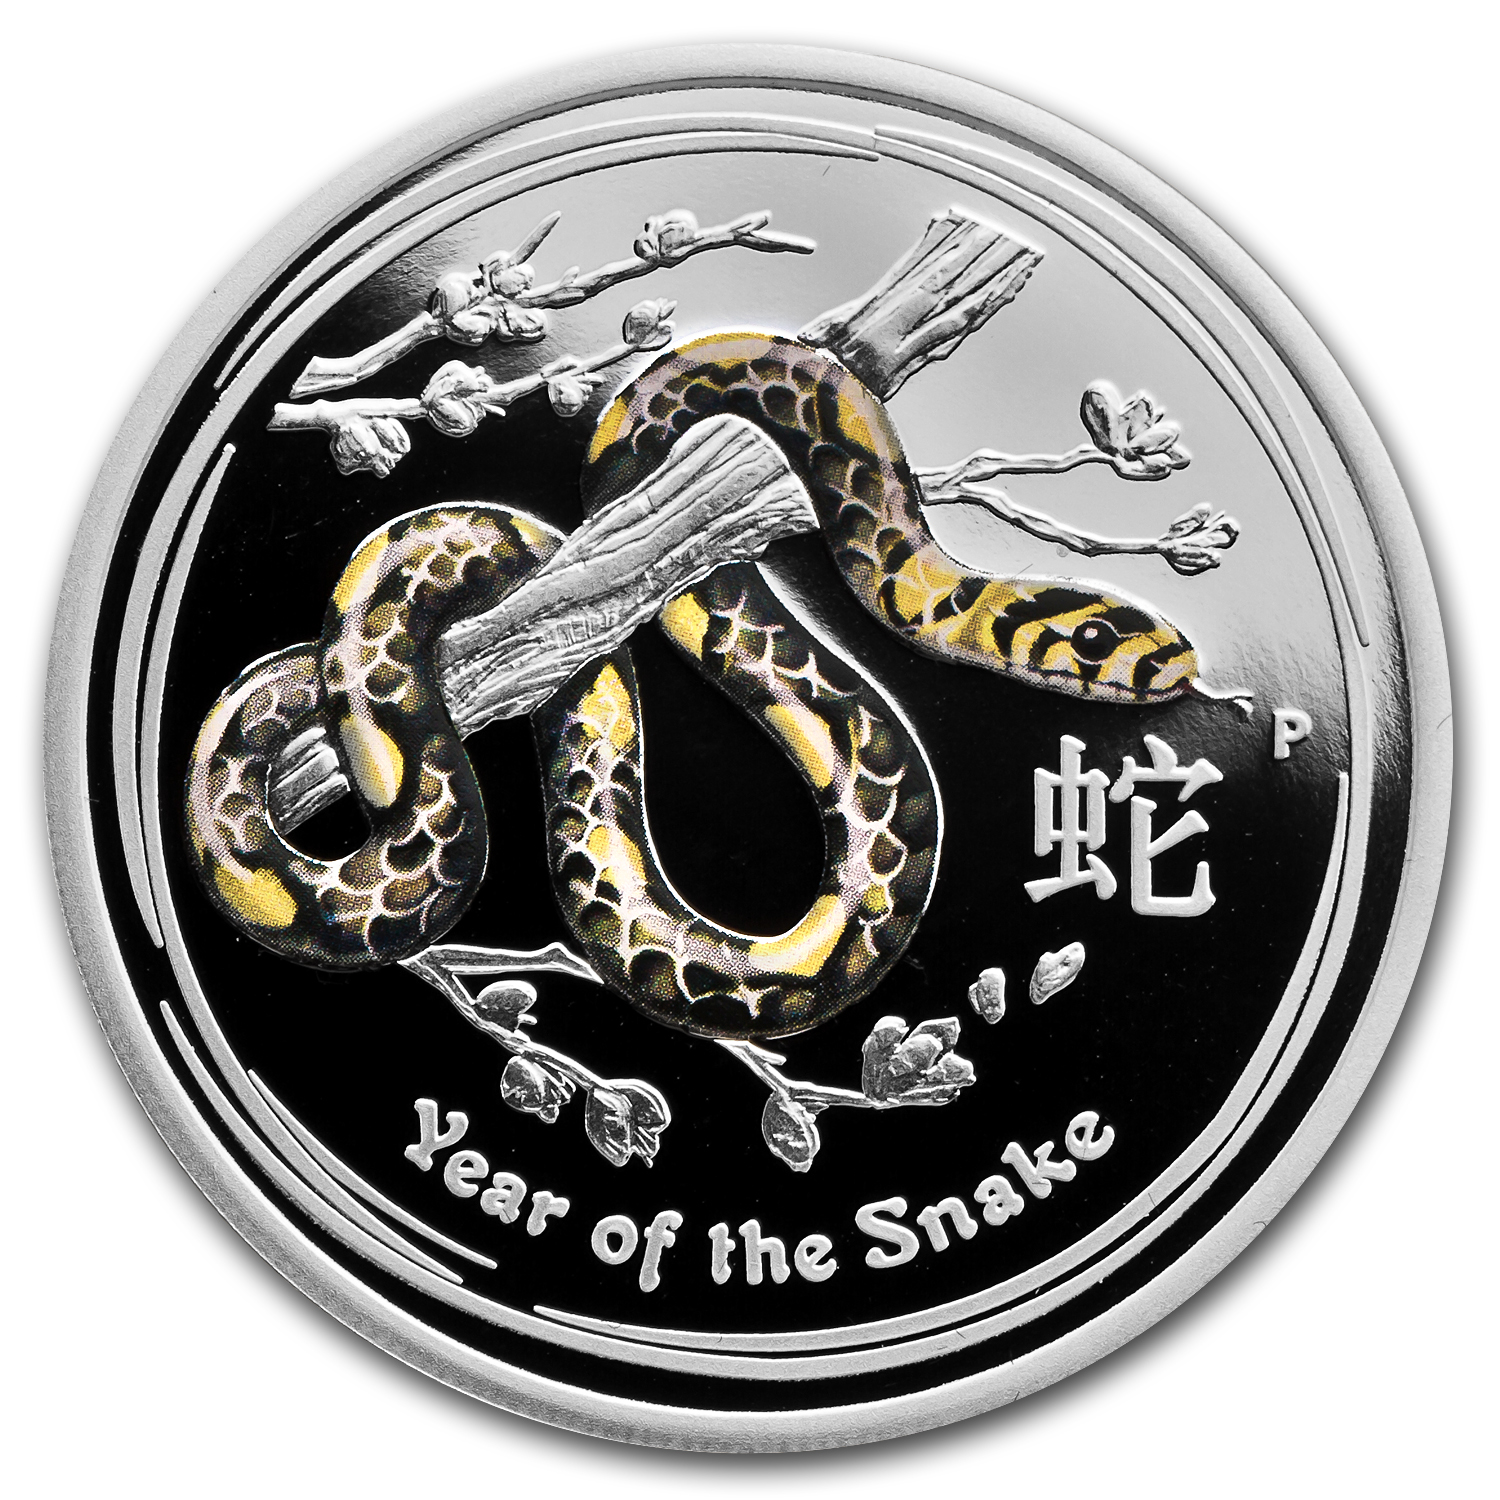 2013 Australia 1/2 oz Silver Year of the Snake Proof (Colorized)